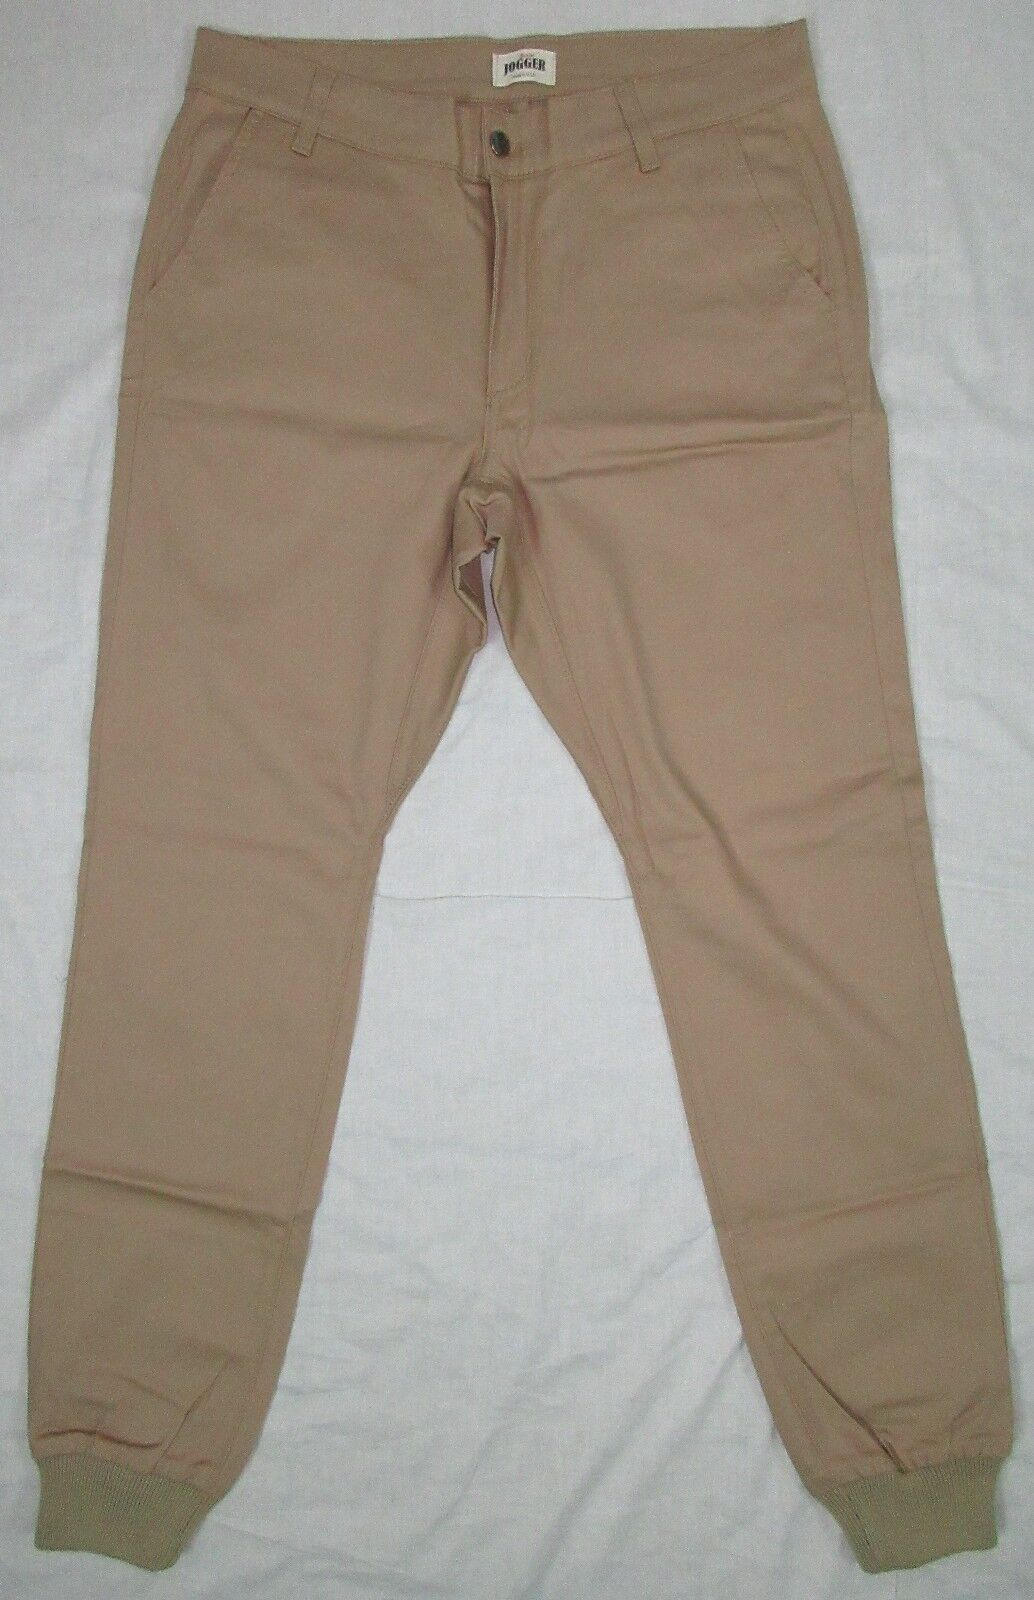 RUSTIC DIME SUNSET JOGGER PANTS STRETCH TWILL TOBACCO SIZE 34